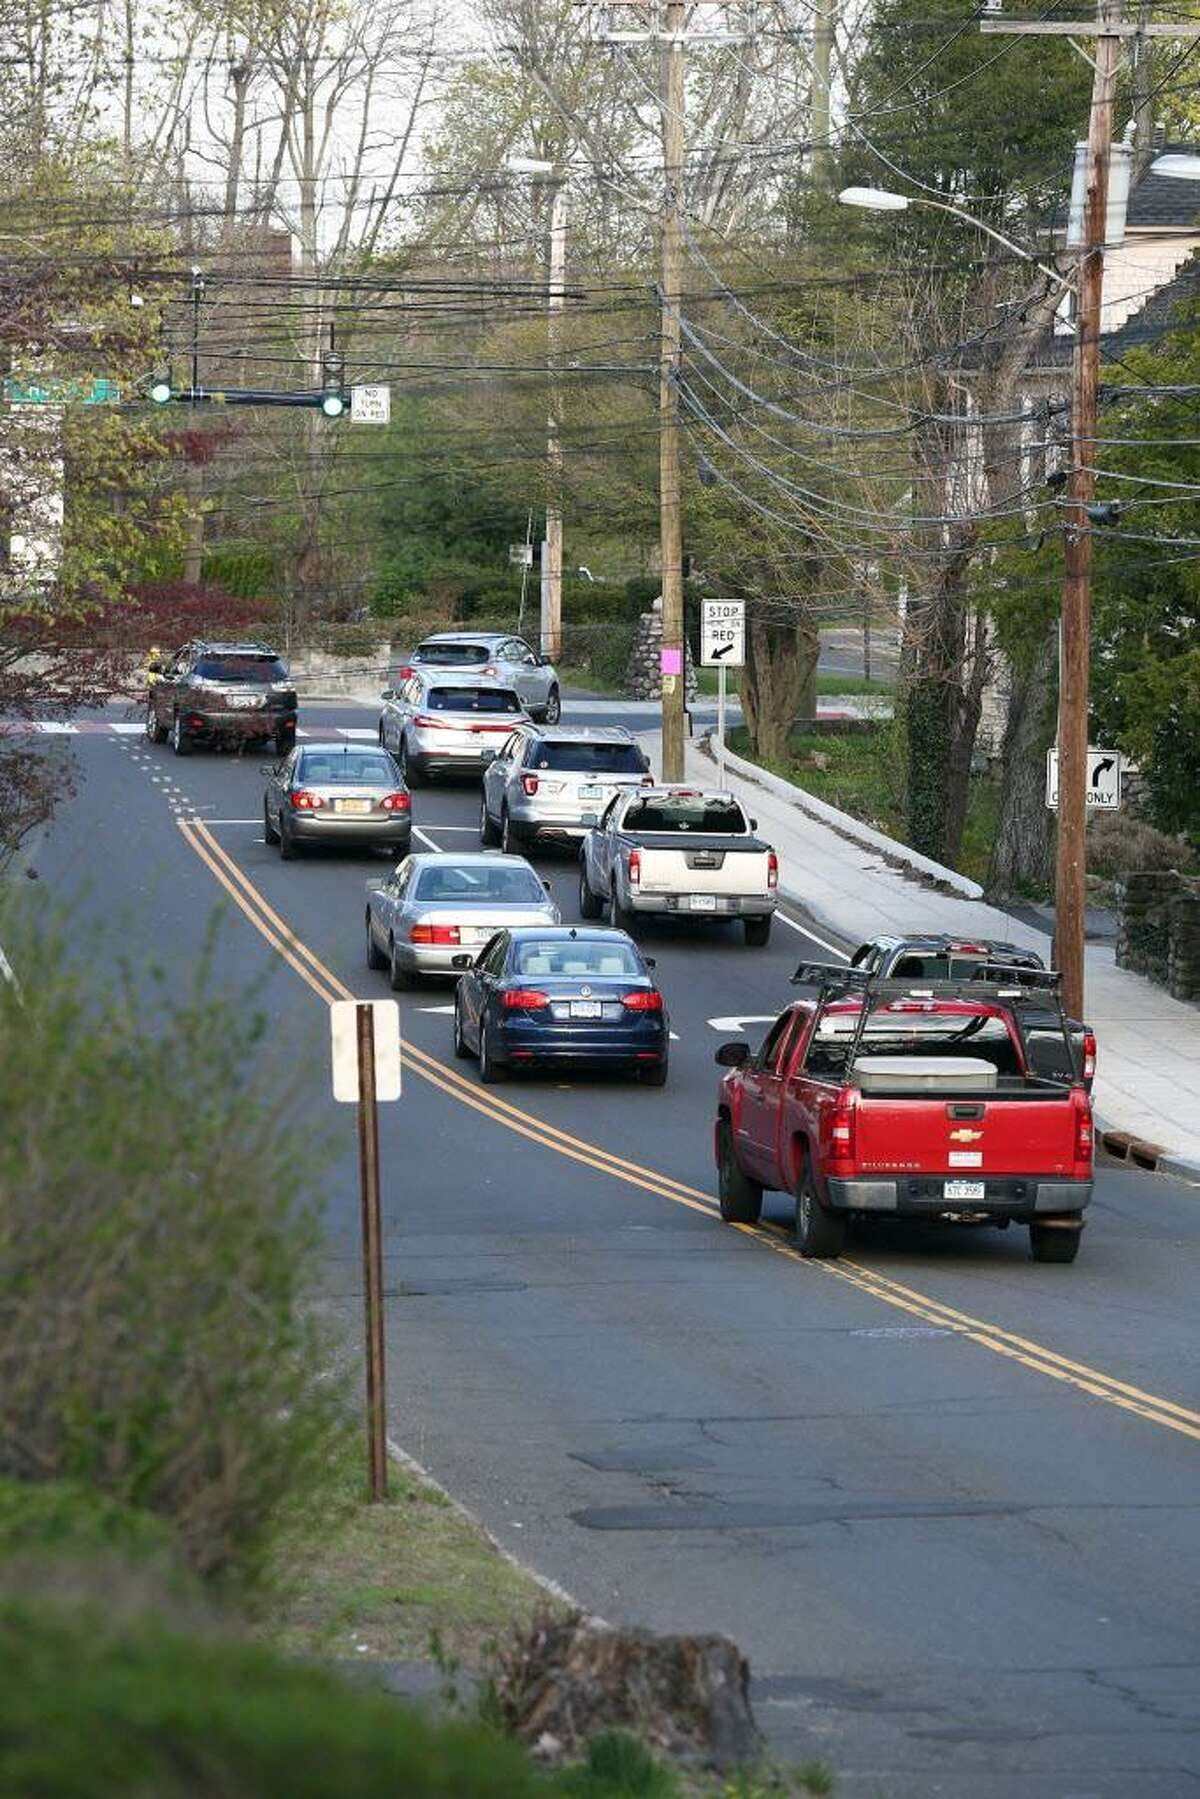 Cars wait at the corner of Weed Hill Avenue and Hope Street on Thursday, April 21, 2016. Springdale residents have conducted their own traffic study using smart phones, video and spreadsheets in response to a city-run traffic study that determined the addition of 500 housing units will not increase the neighborhood traffic.